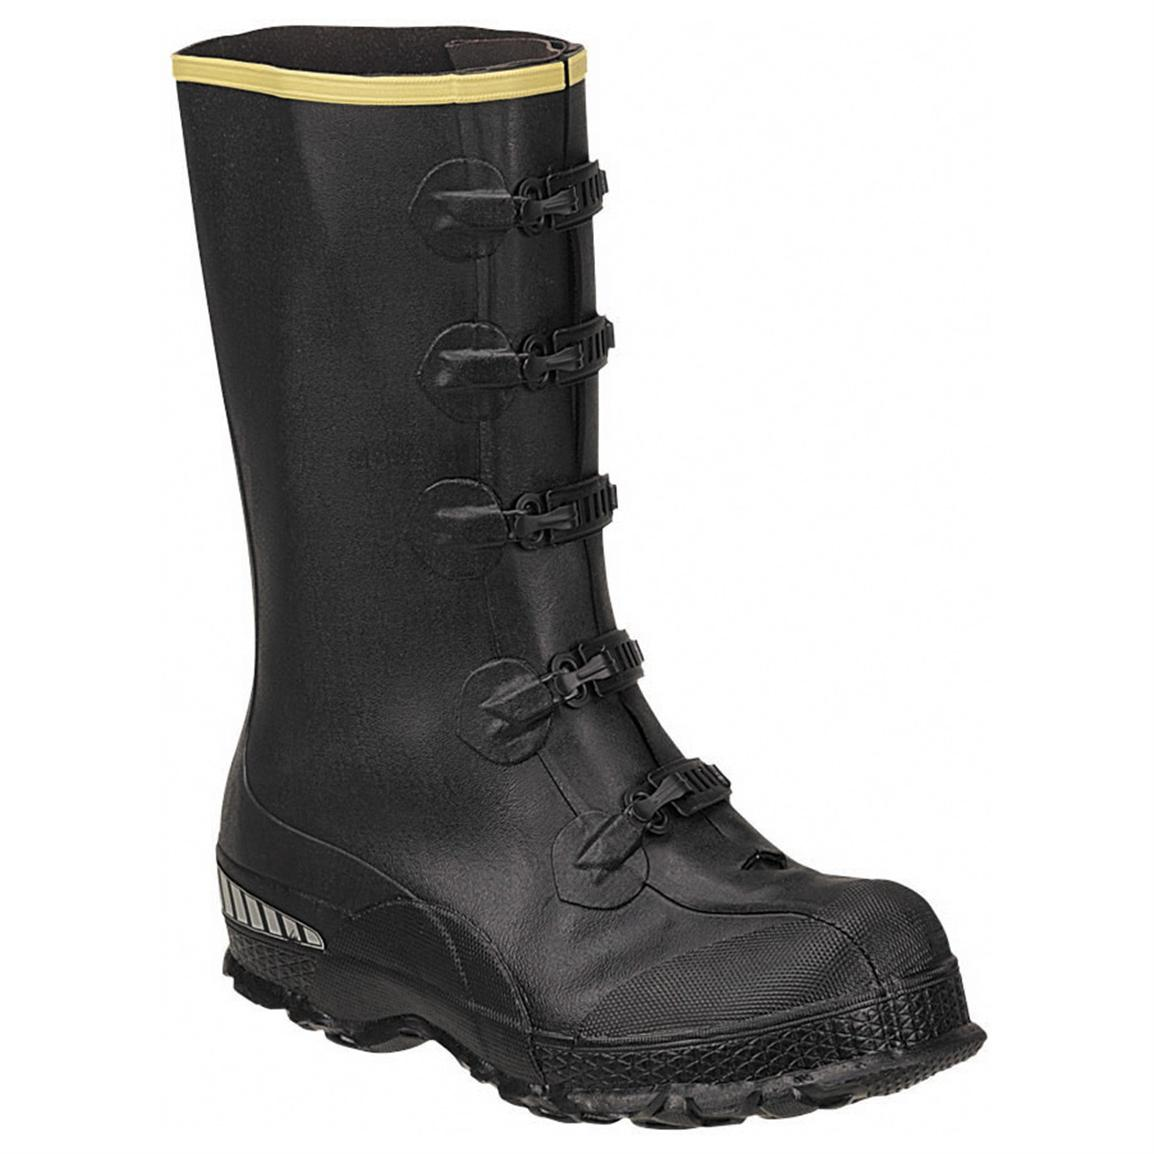 Men's LaCrosse® 14 inch ZXT™ Buckle Series Overshoe Work Boots, Black